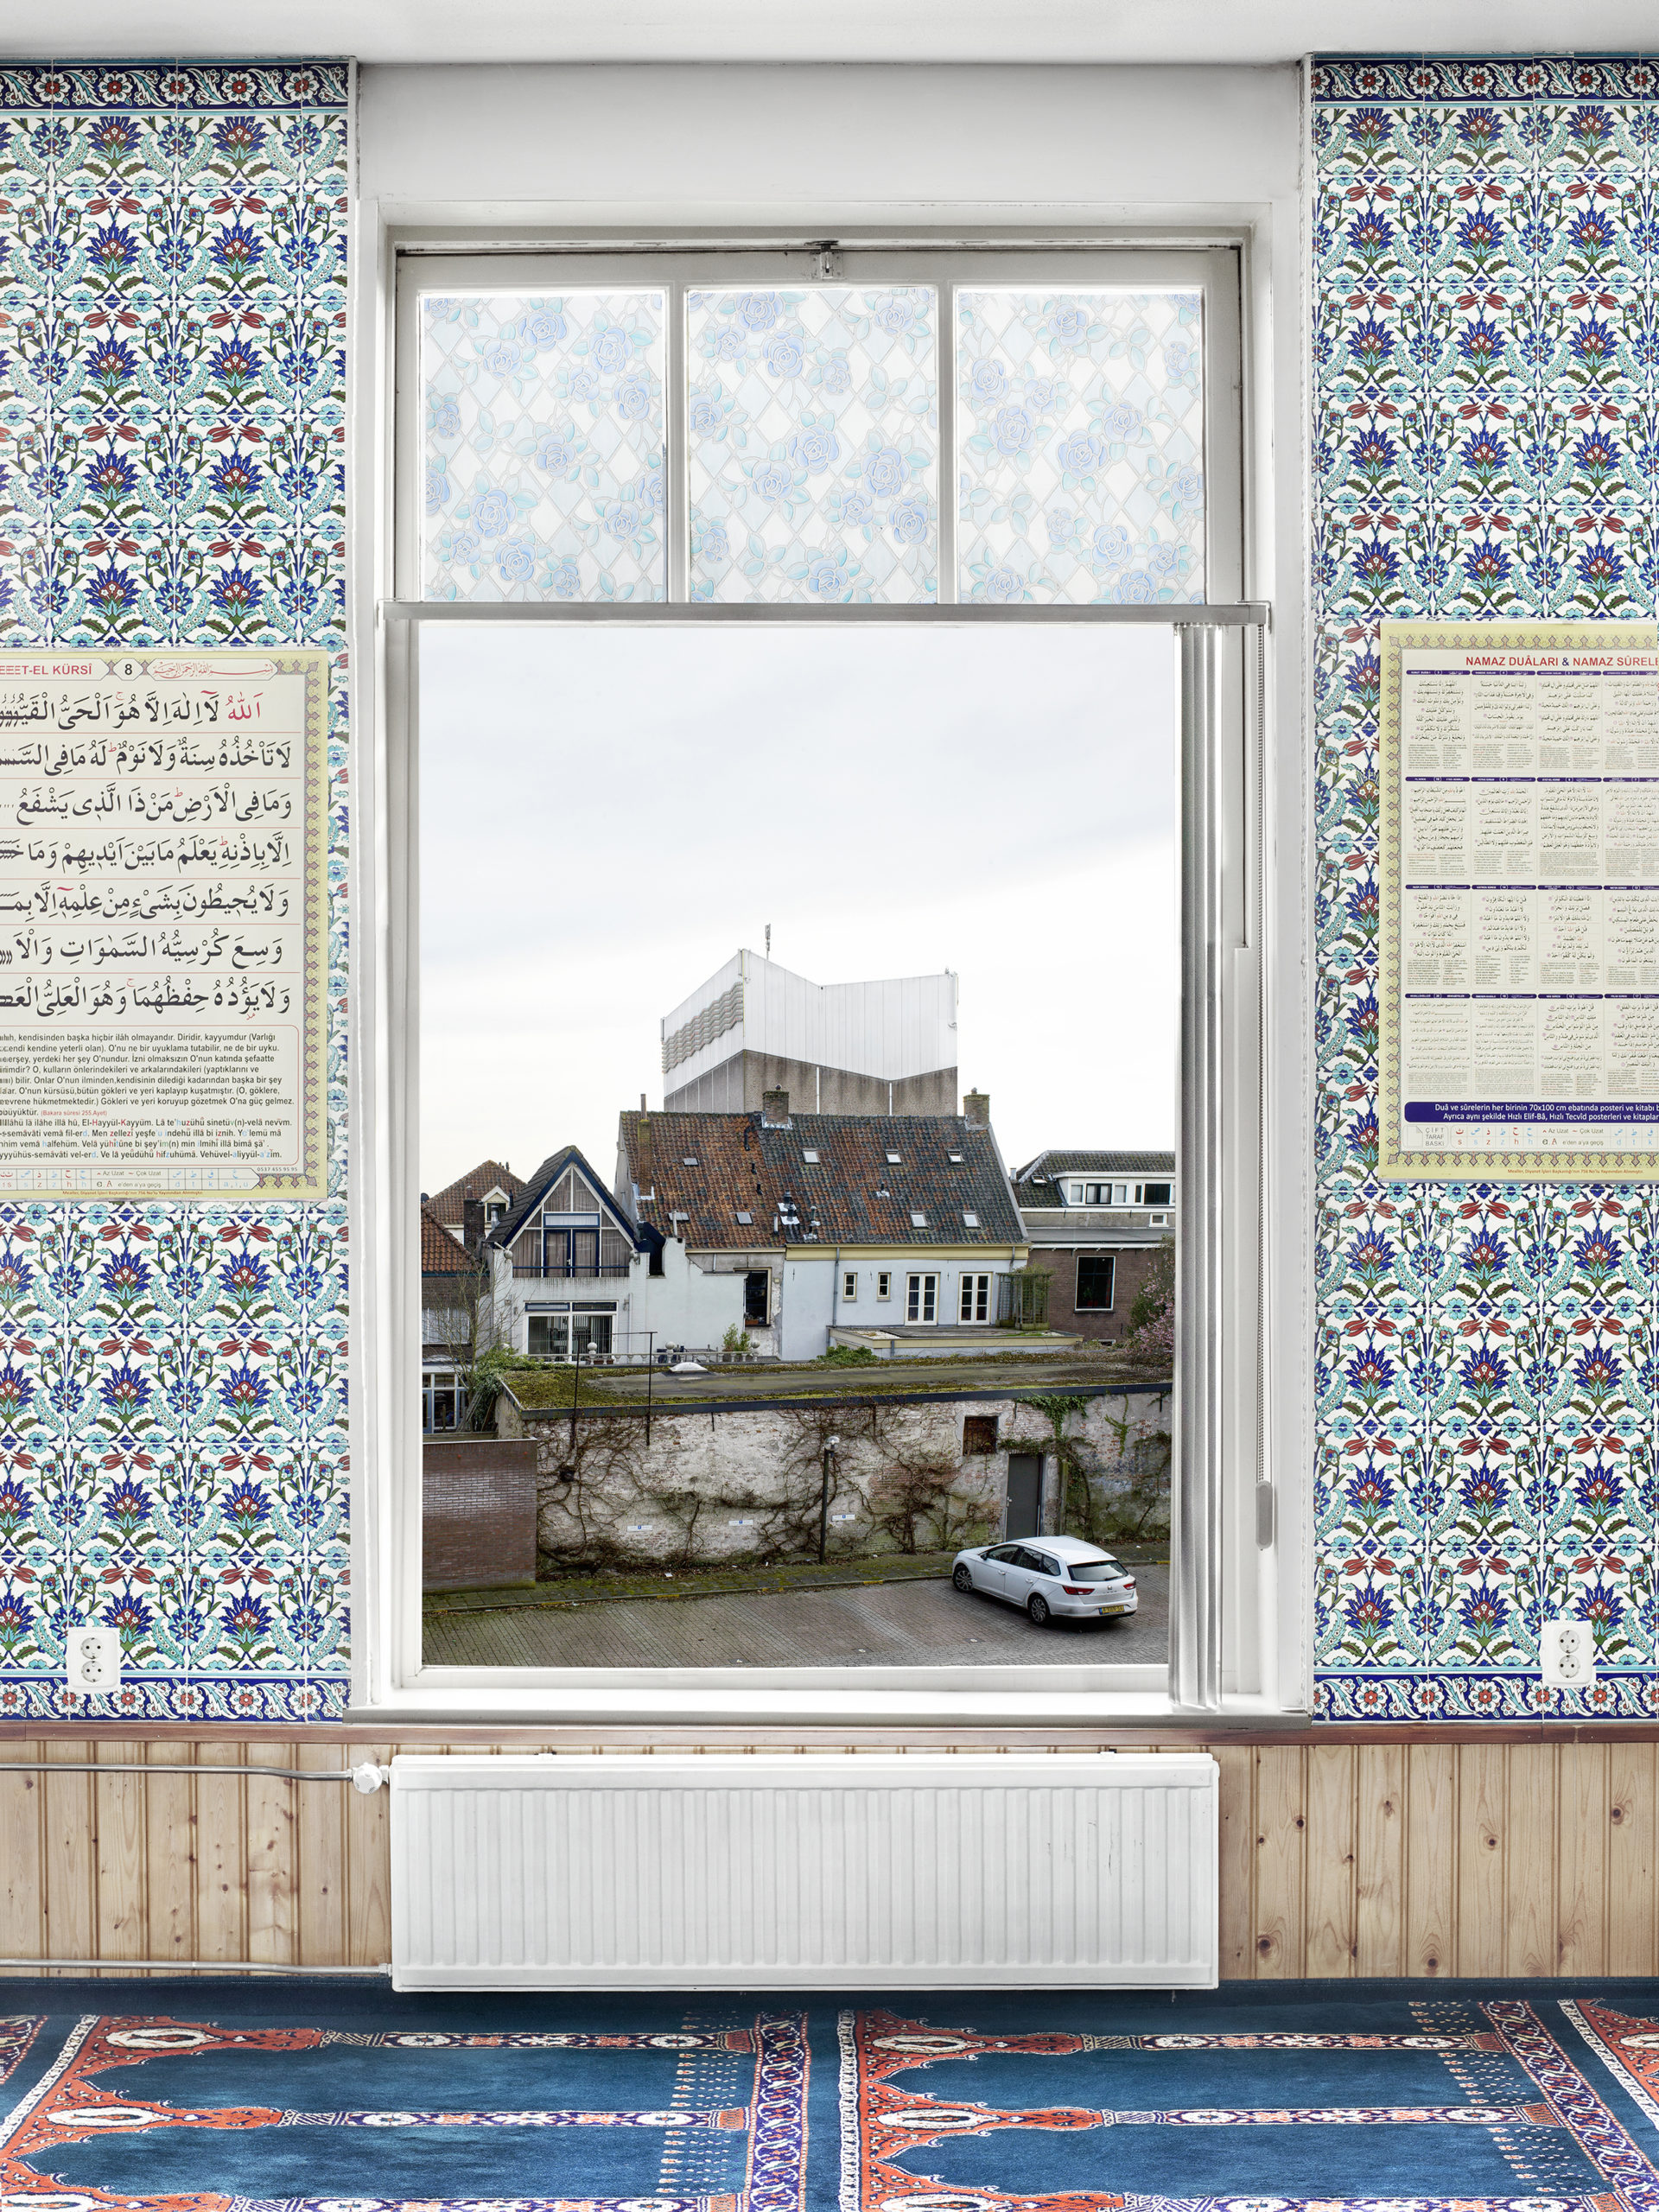 'New Dutch Views#1', The Netherlands, 2018. From the series New Dutch Views, 2018-2019. ©Marwan Bassiouni, Courtesy of Galerie Ron Mandos- Amsterdam.